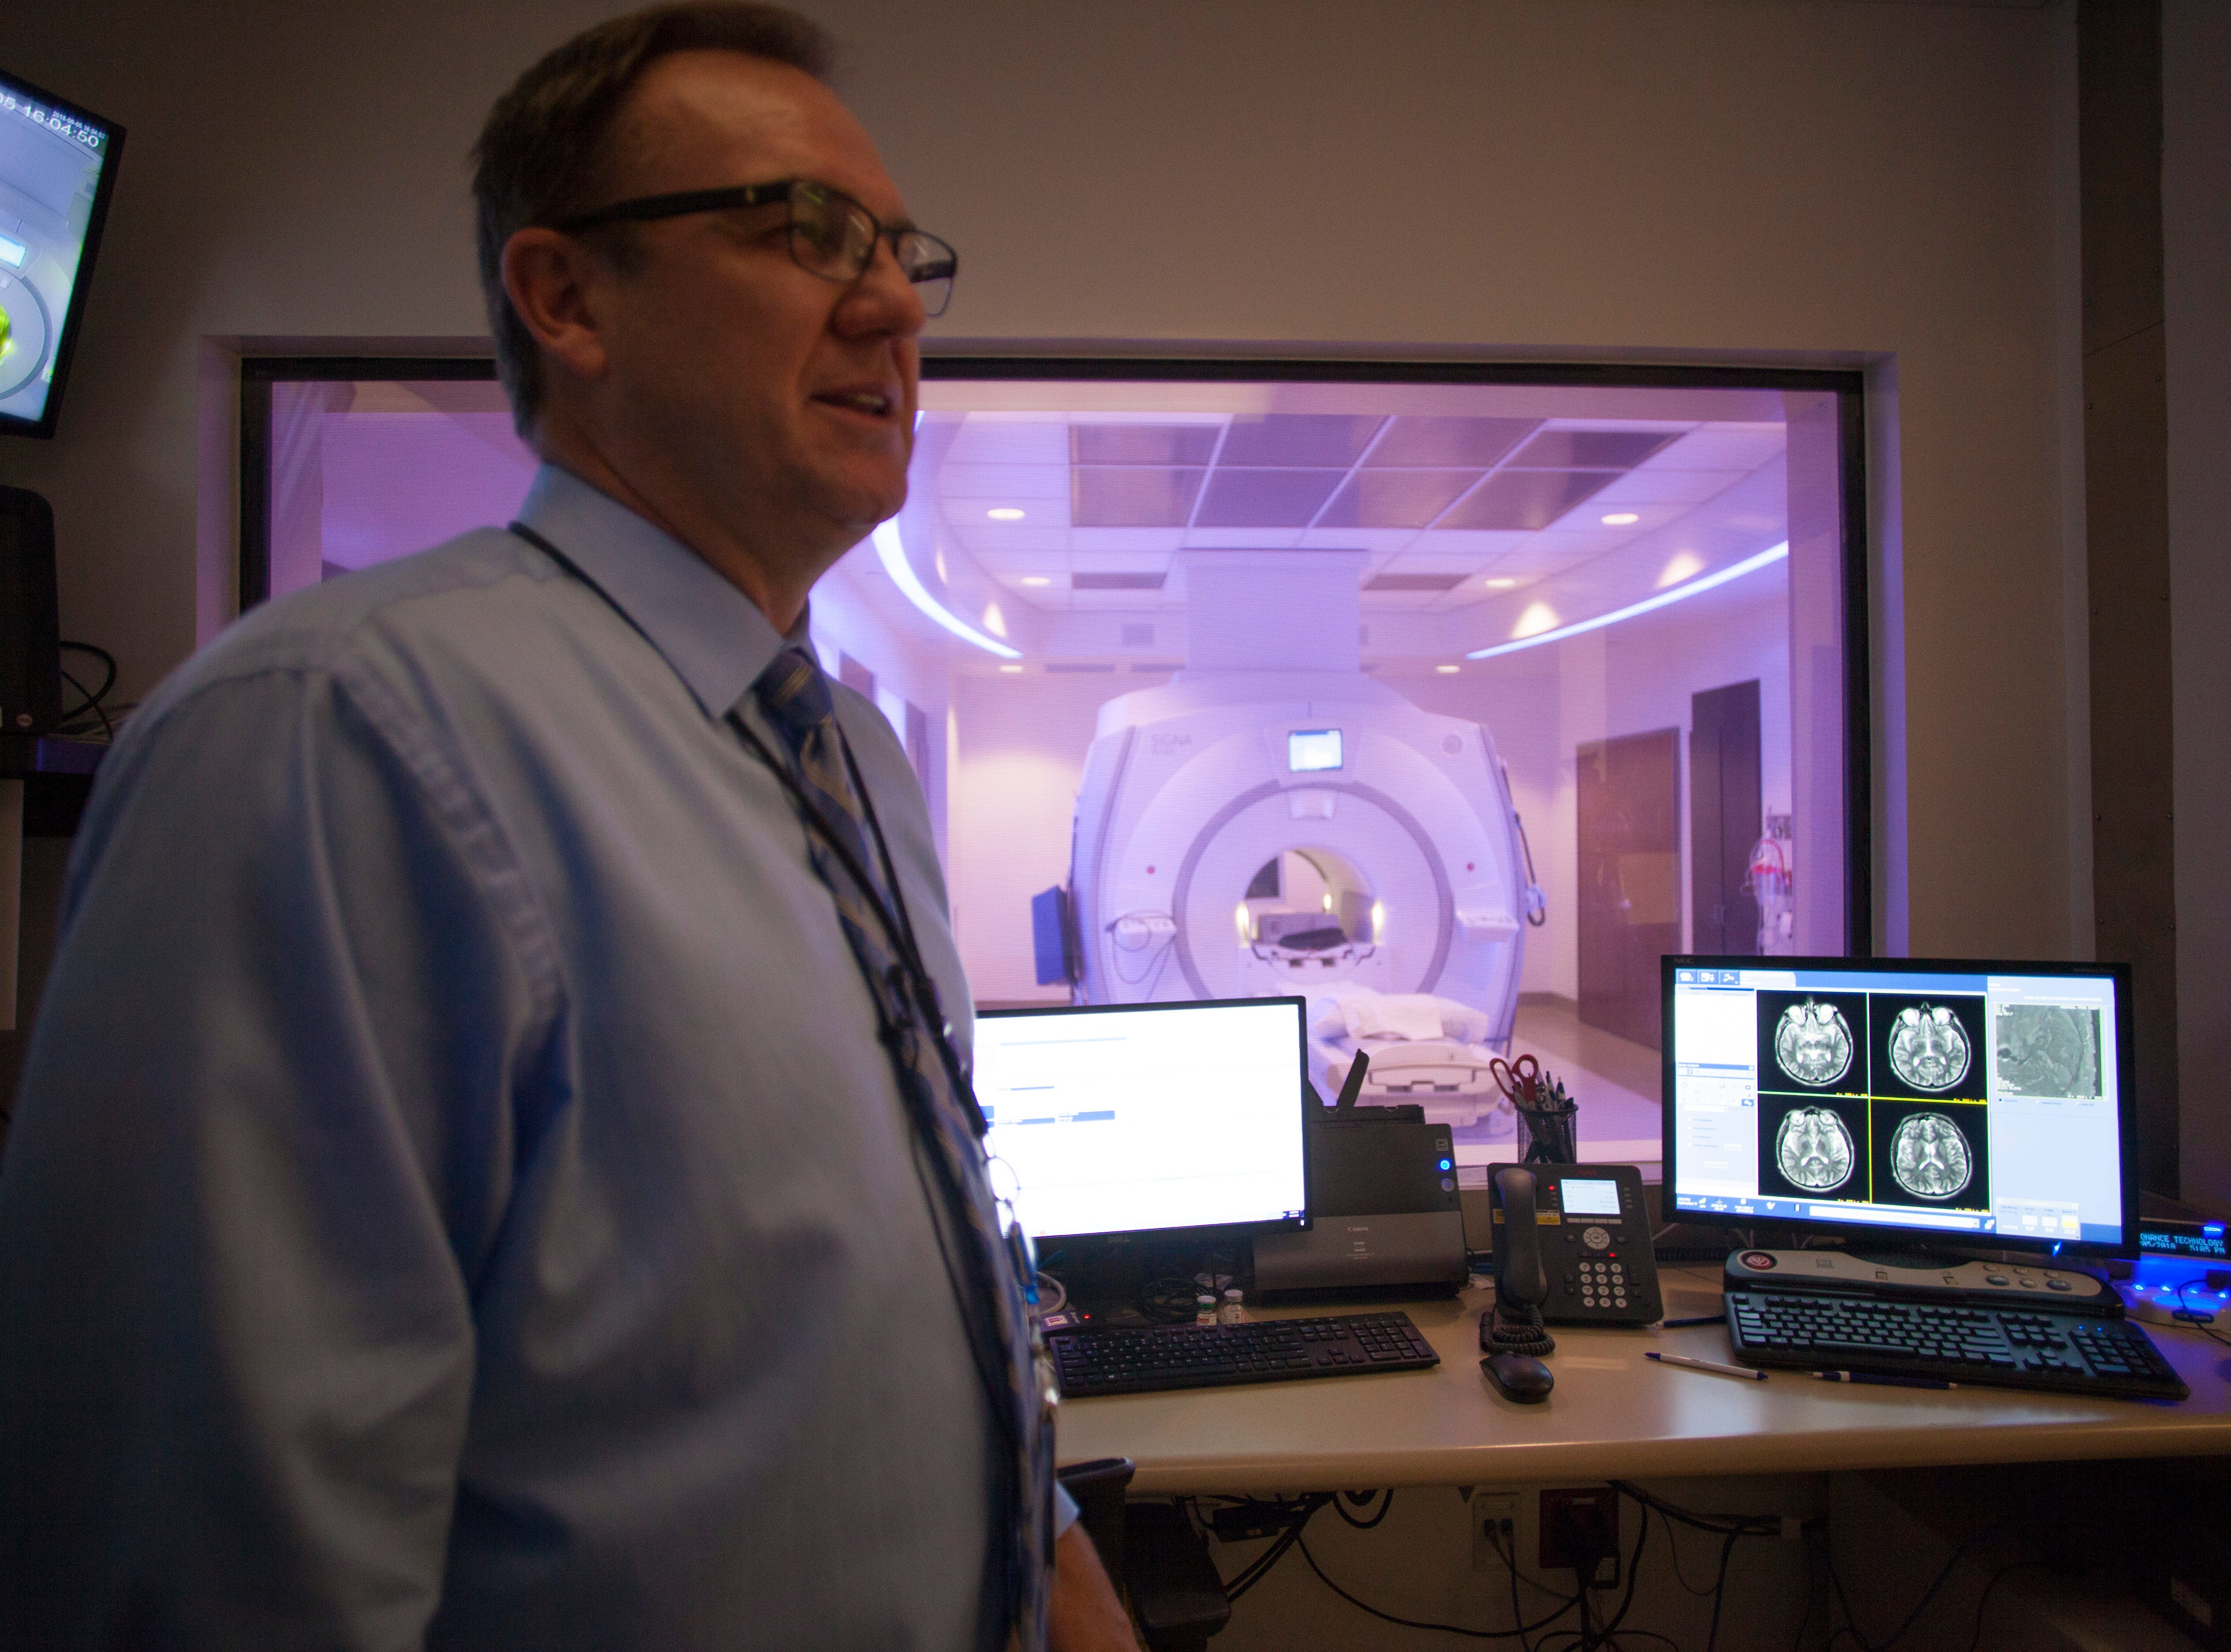 Darrell Hinton, Director of Imaging at IHC, demonstrates one of the MRI machines in the hospital and it's proximity to an operating room Wednesday, Sept. 5, 2018.